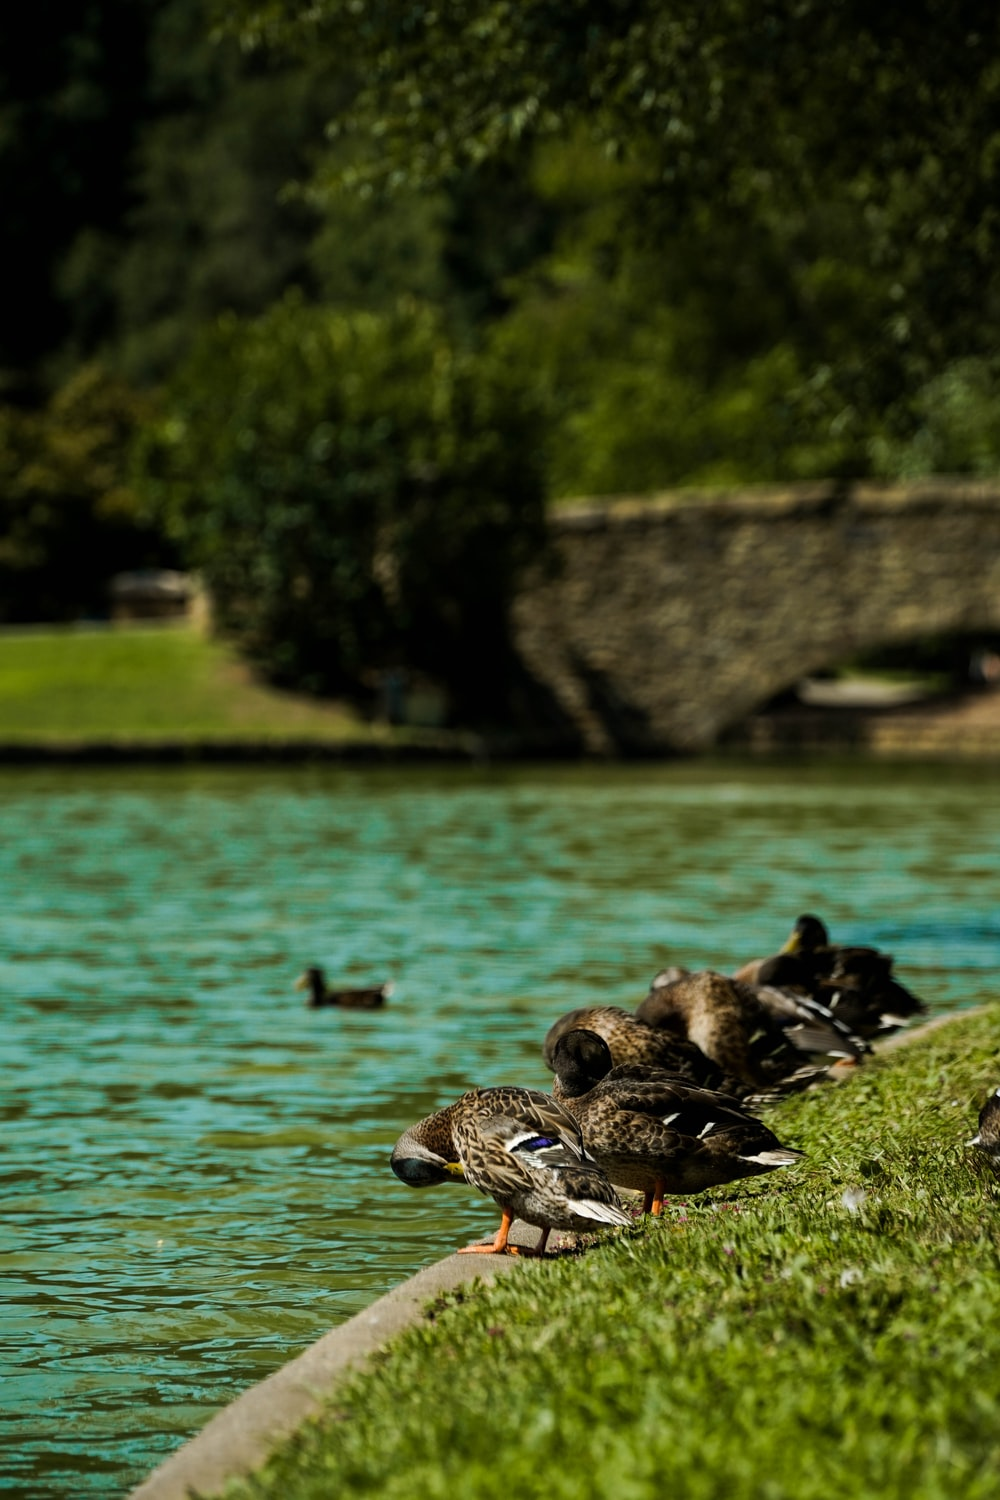 ducks beside body of water